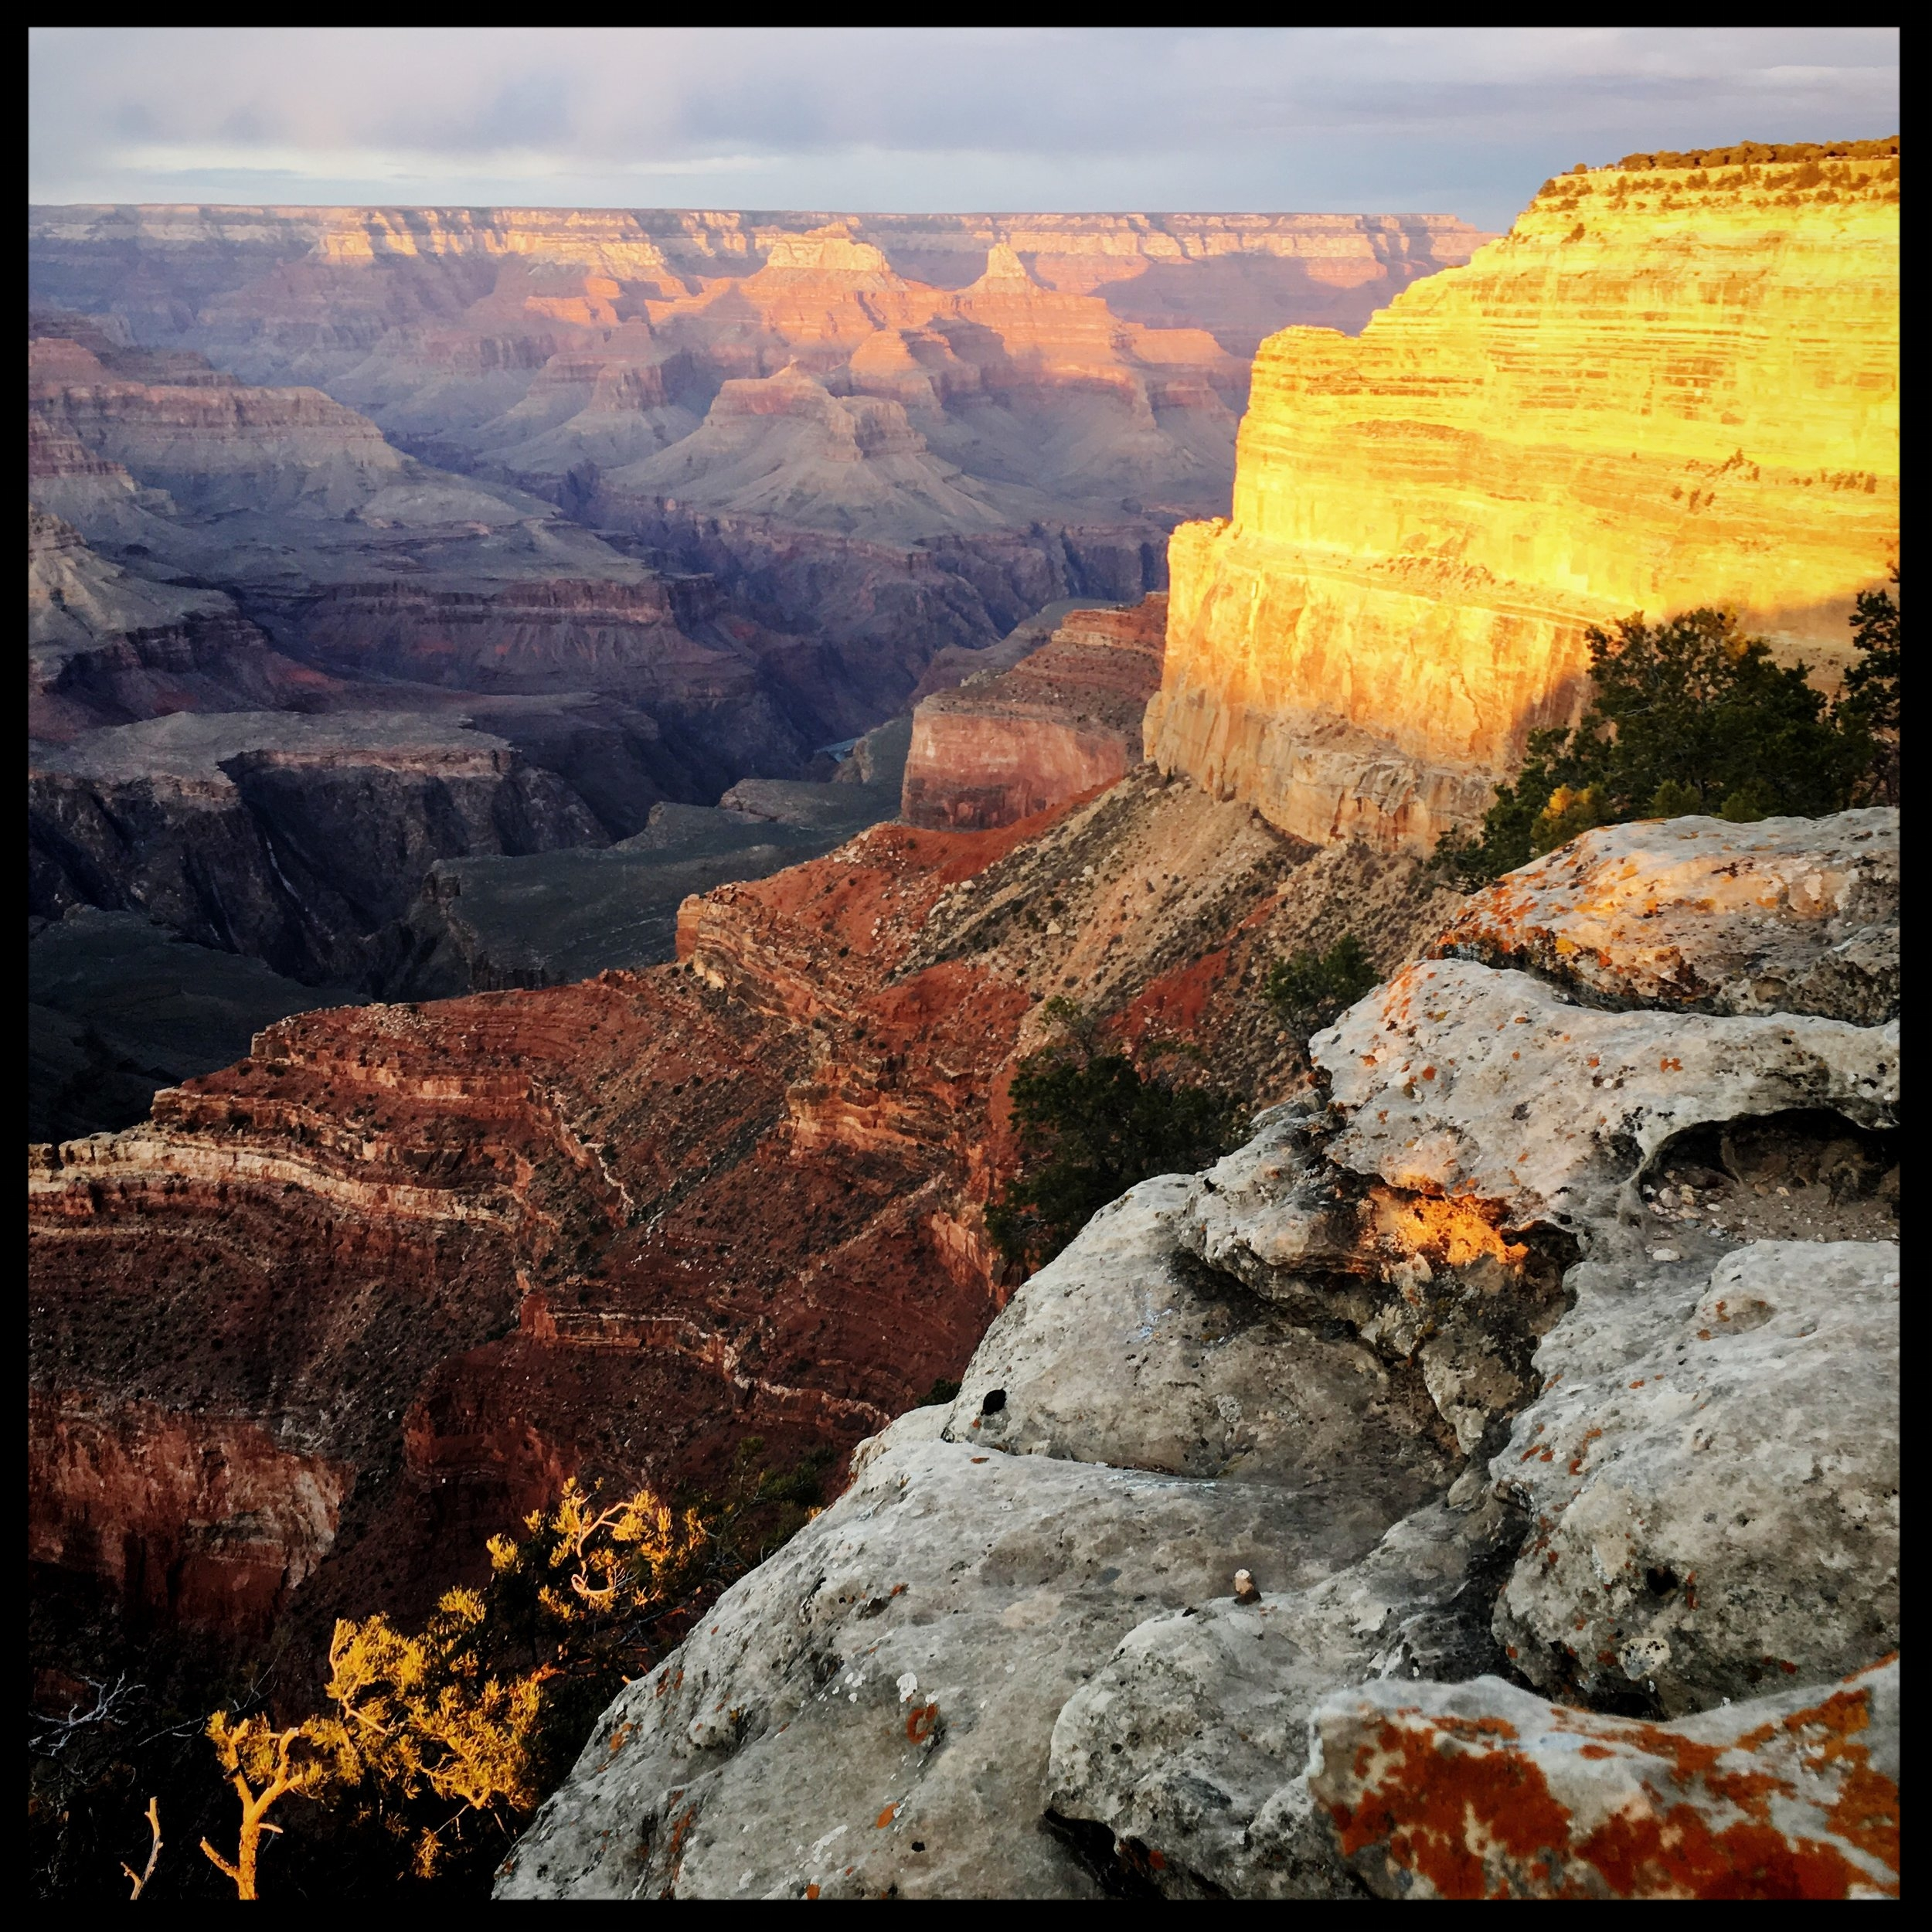 Sunset at the Grand Canyon is magical.  Photo by Michael Mundt.